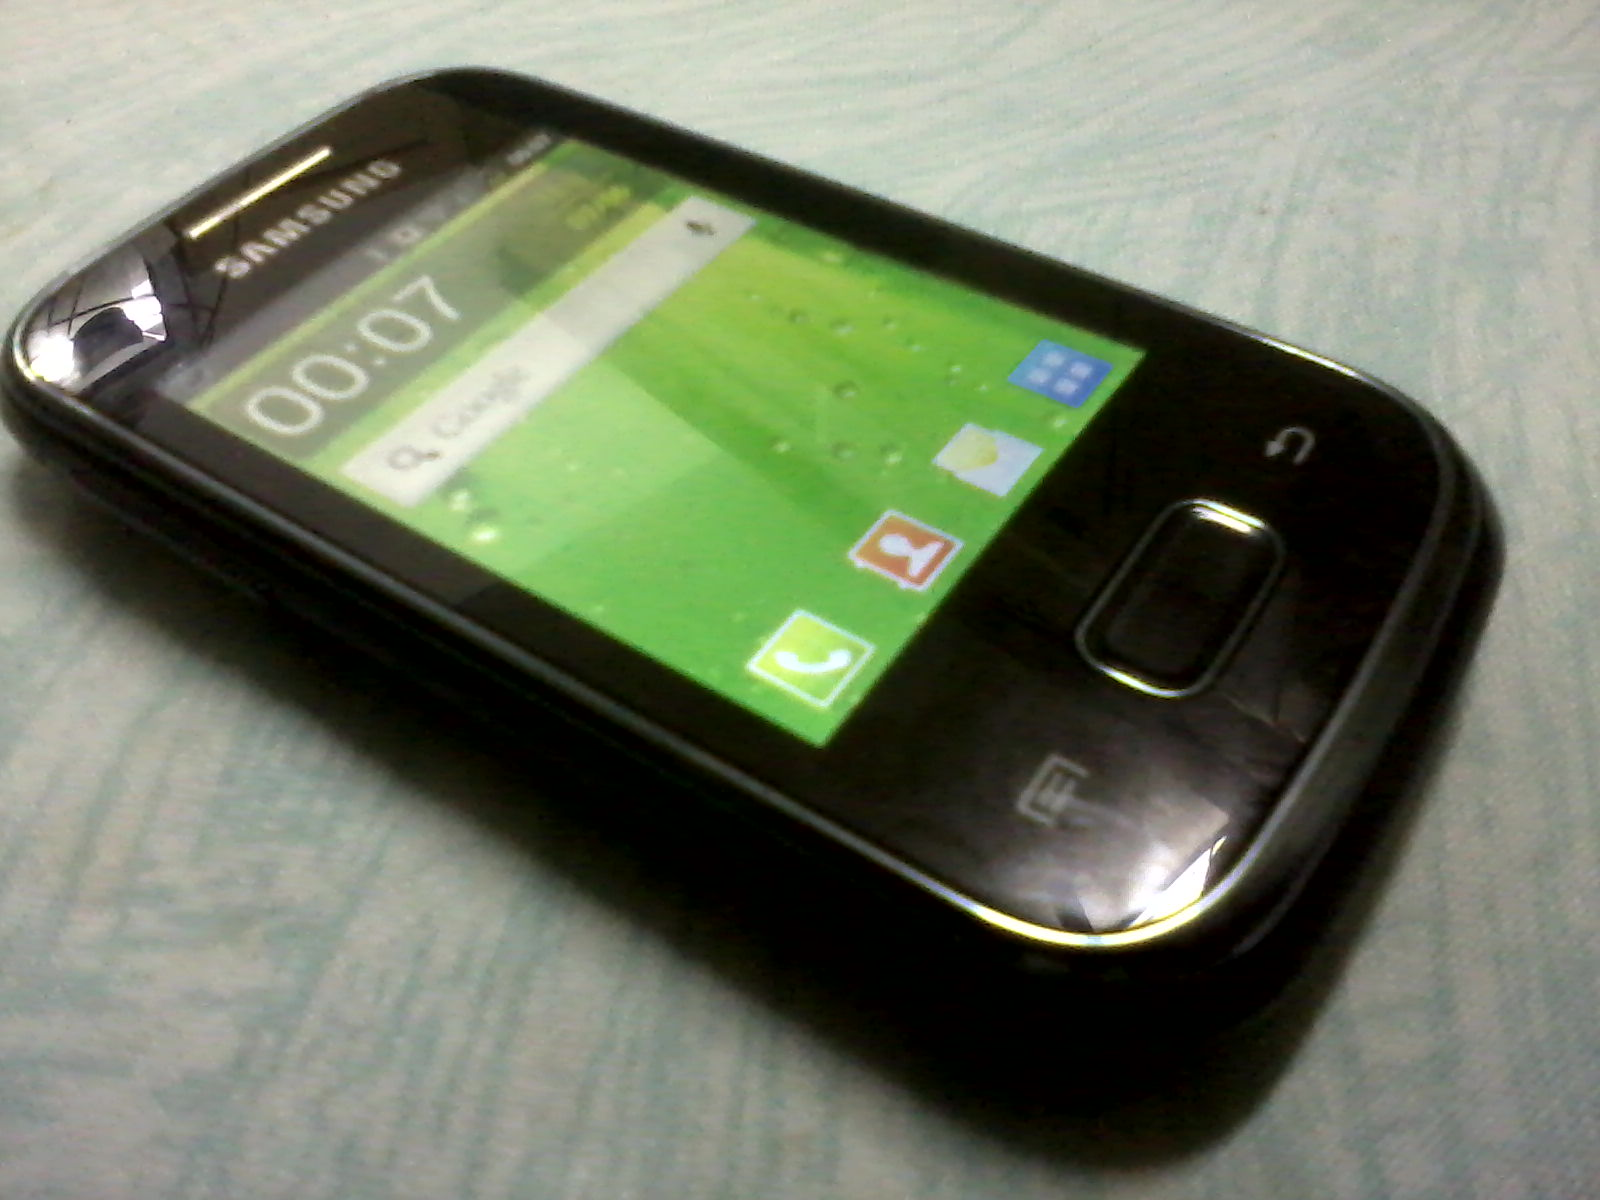 Camera First Android Phone Of Samsung my first android phone samsung galaxy pocket gt s5300 it